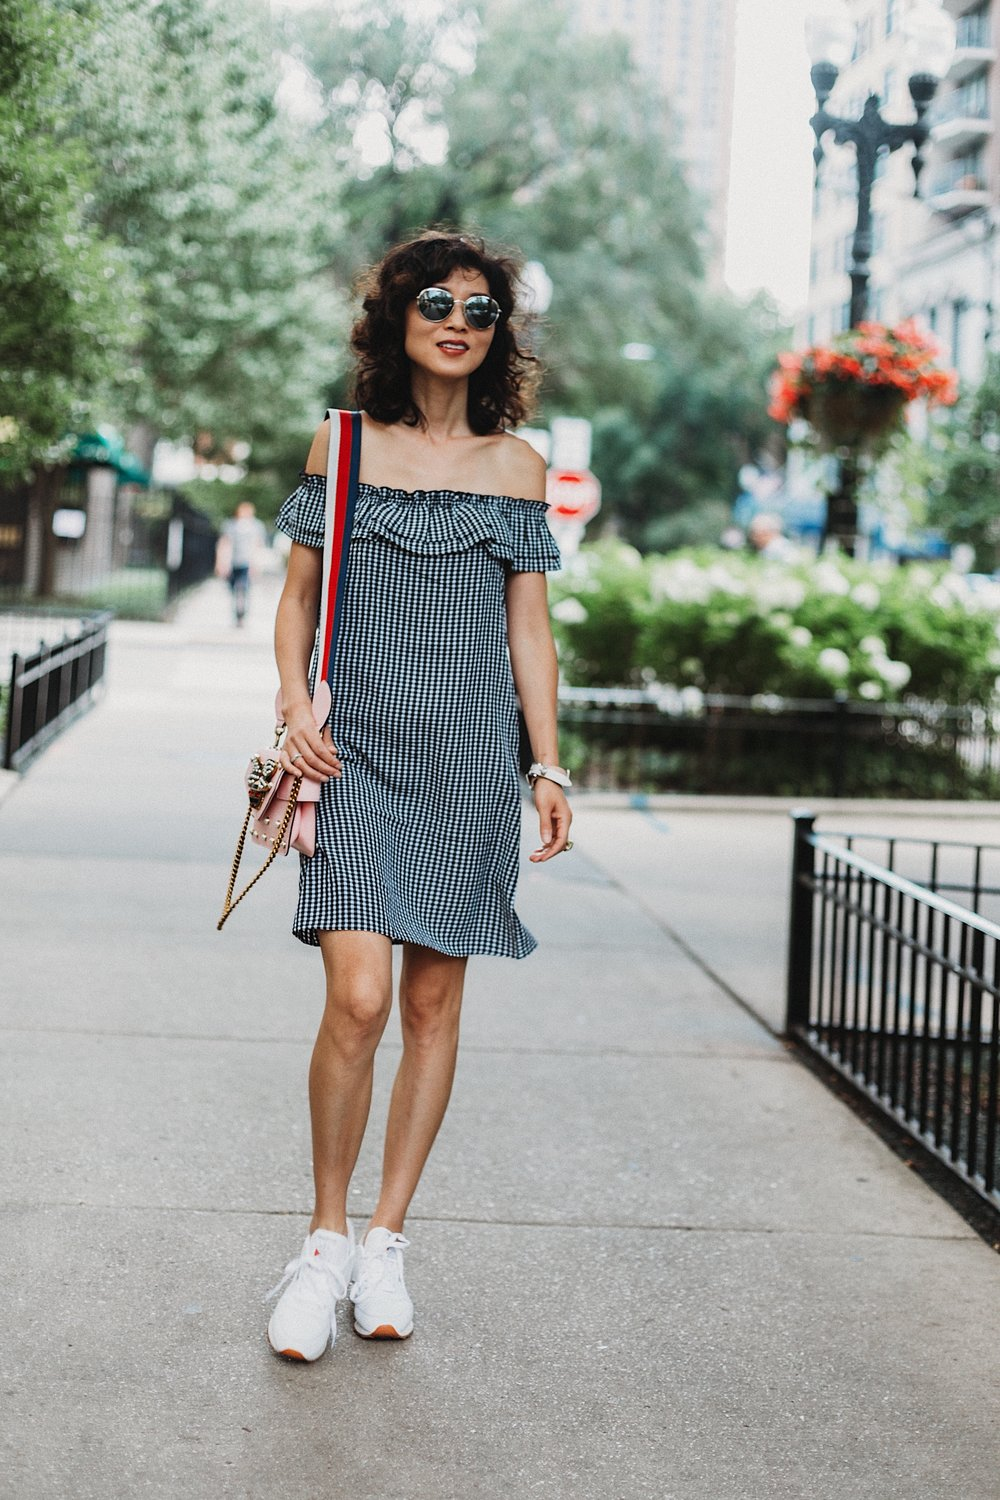 Shop my look and similar items here://   Gingham Dress // Gingham Dress(similar) // Gingham Dress(similar) // Sneaker // Broadway Mini  Purse // Sunnies // Sunnies( steal)  // Bracelet //